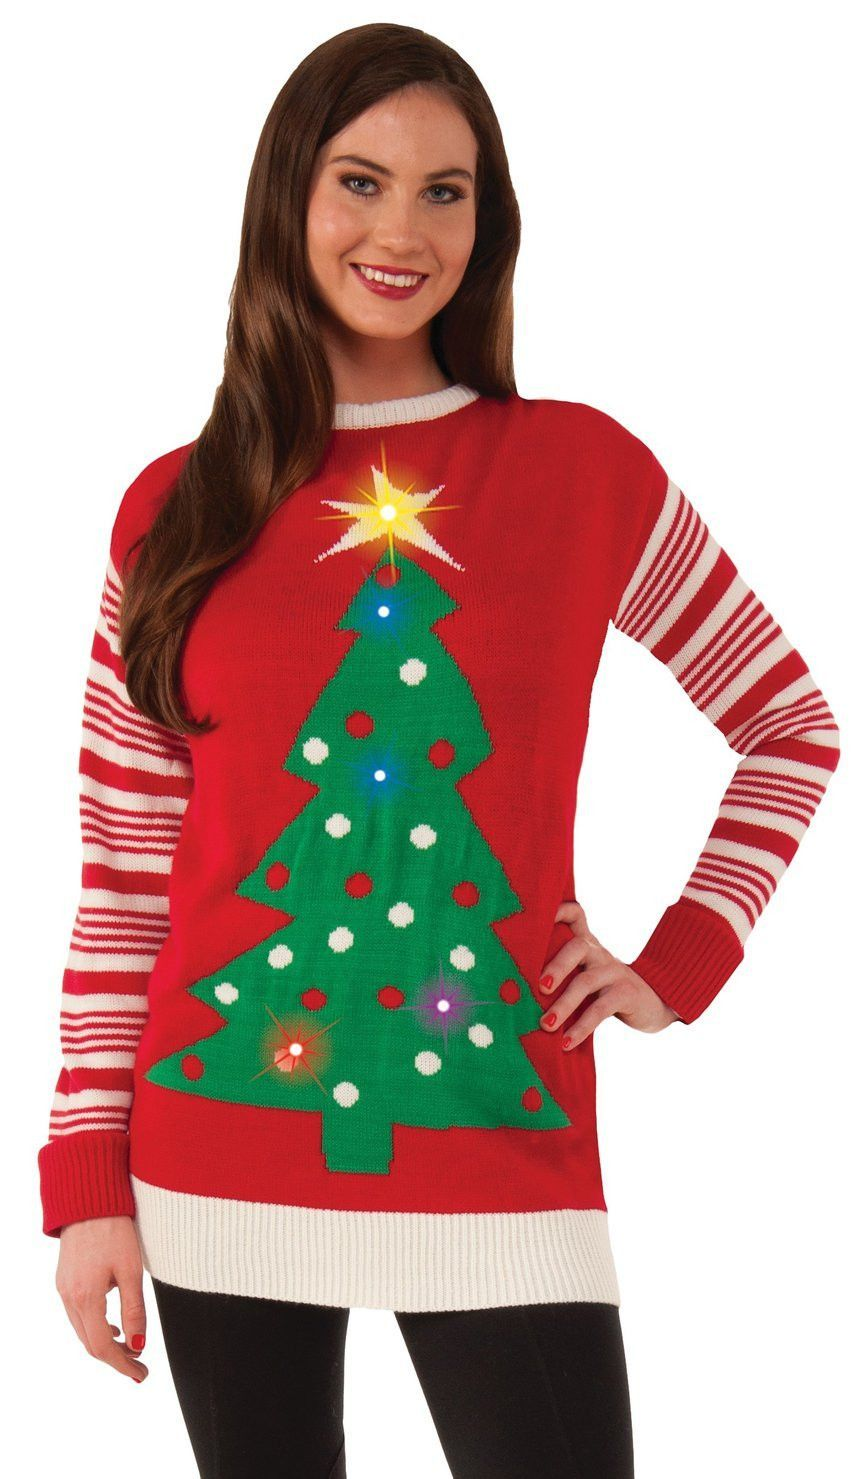 Christmas Tree Light Up Adult Ugly Sweater 3 Way Switch Options Festive Red Features A Design And Multi Colored Lights Hidden With For Blinking